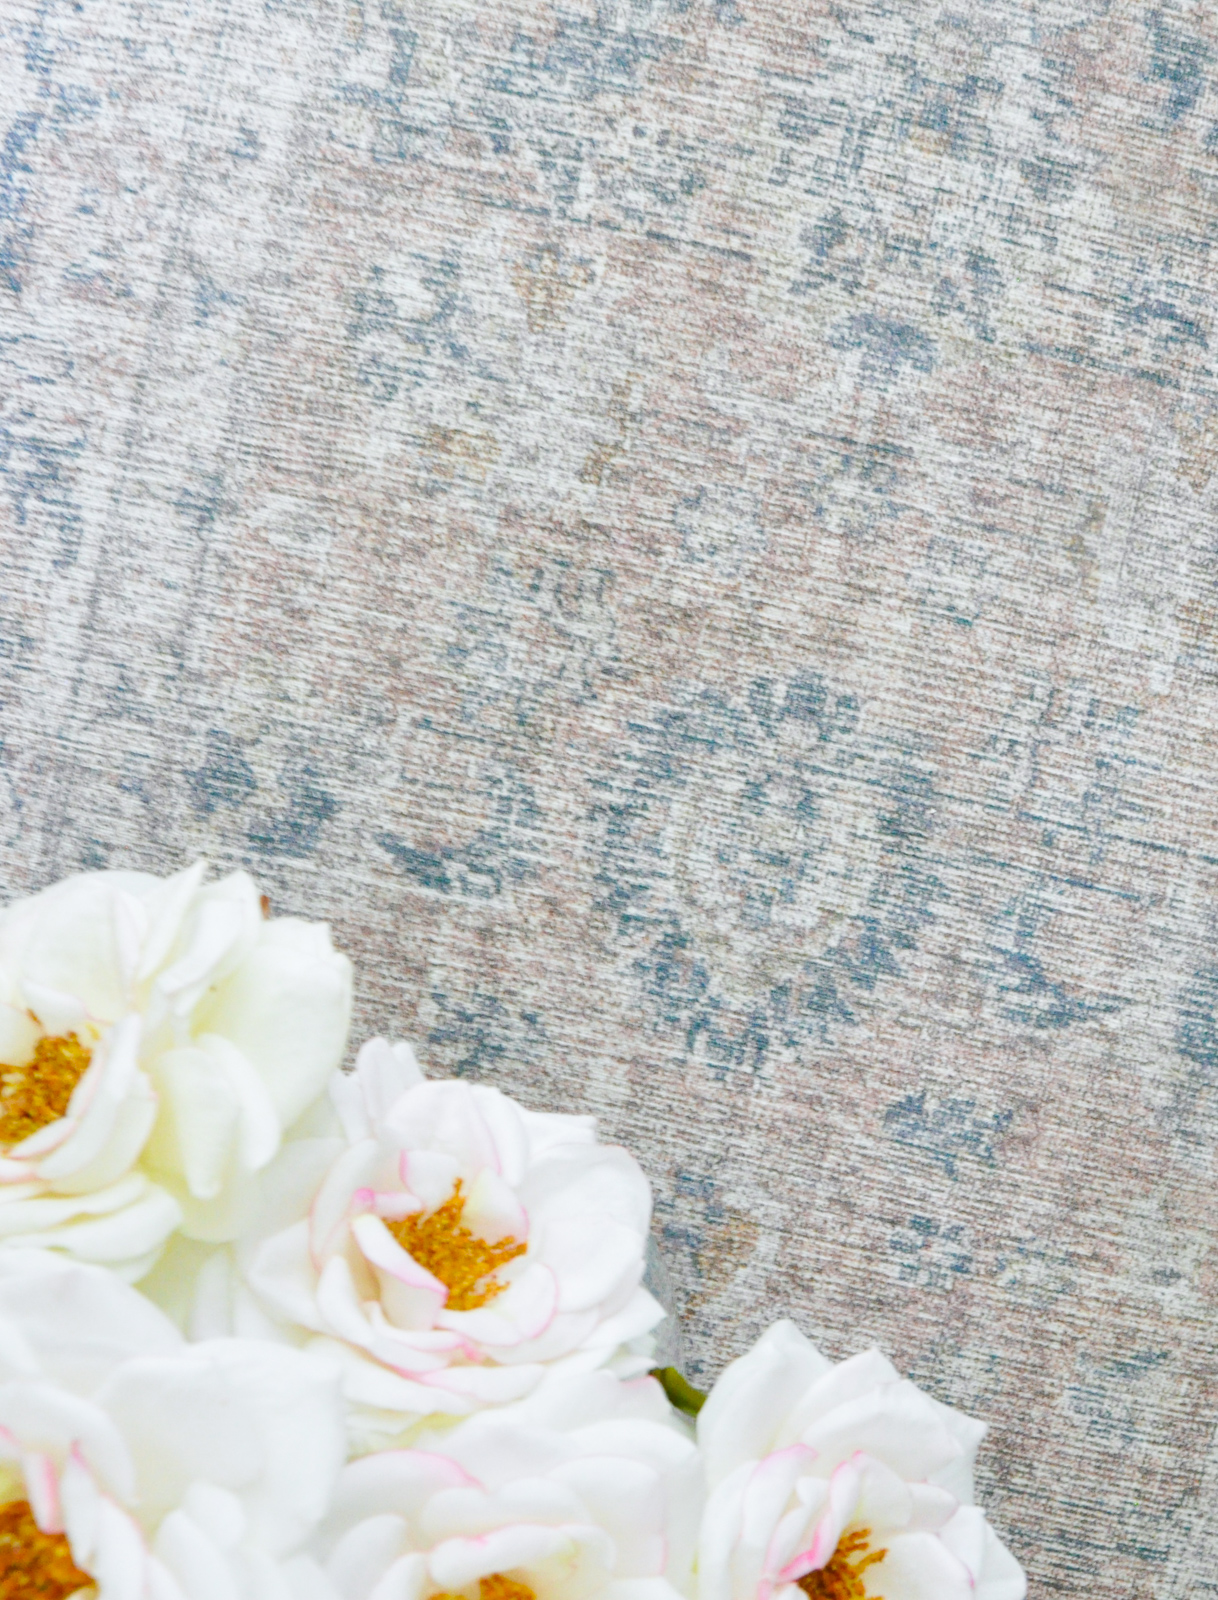 Beautiful blue and rose rug